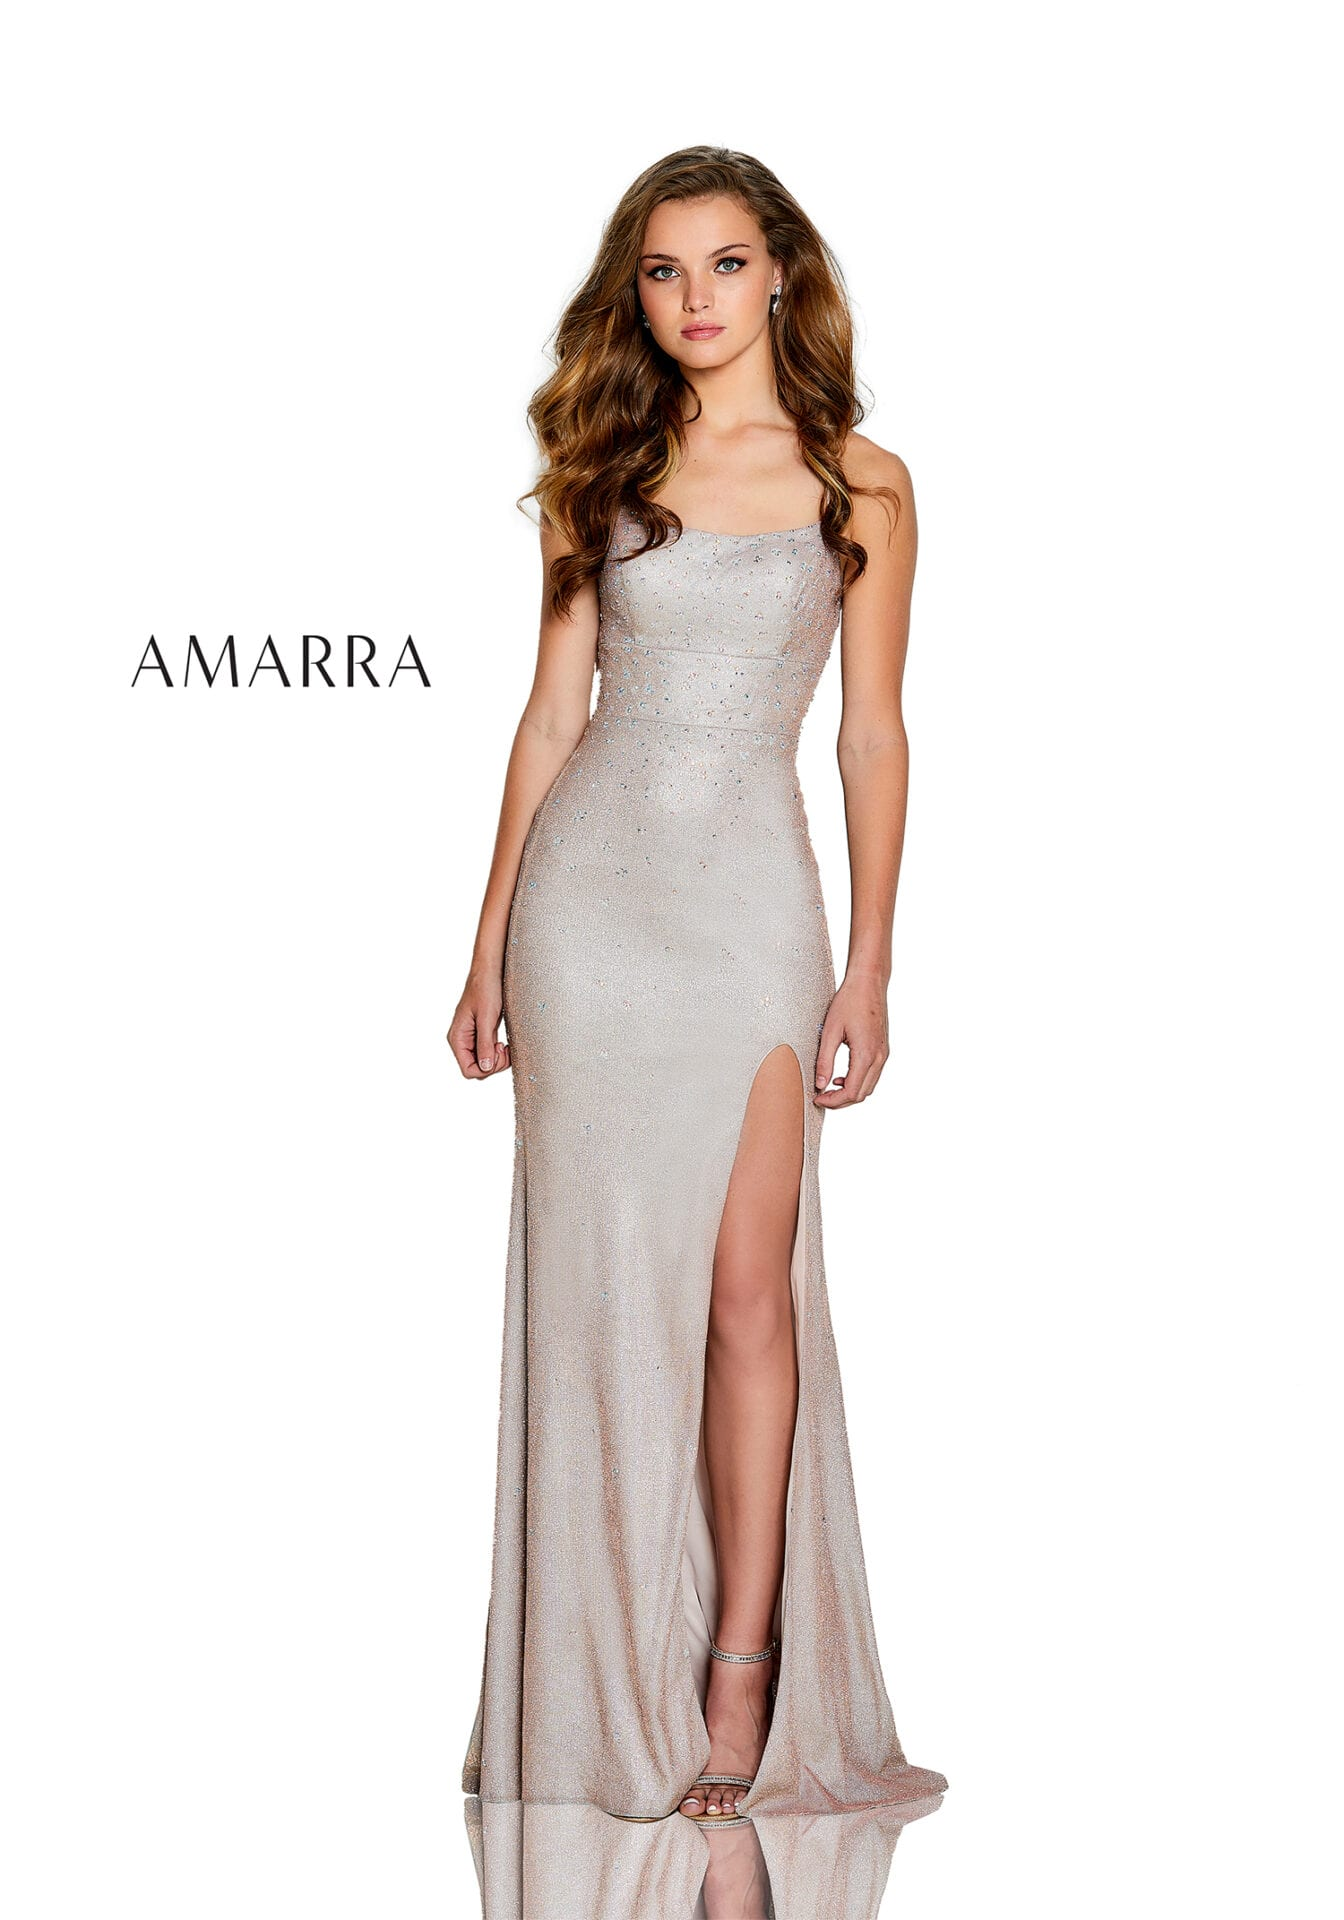 Fitted shimmer gown featuring a scoop neckline, flared beading that gradually cascades down, slit skirt, and lace up back.